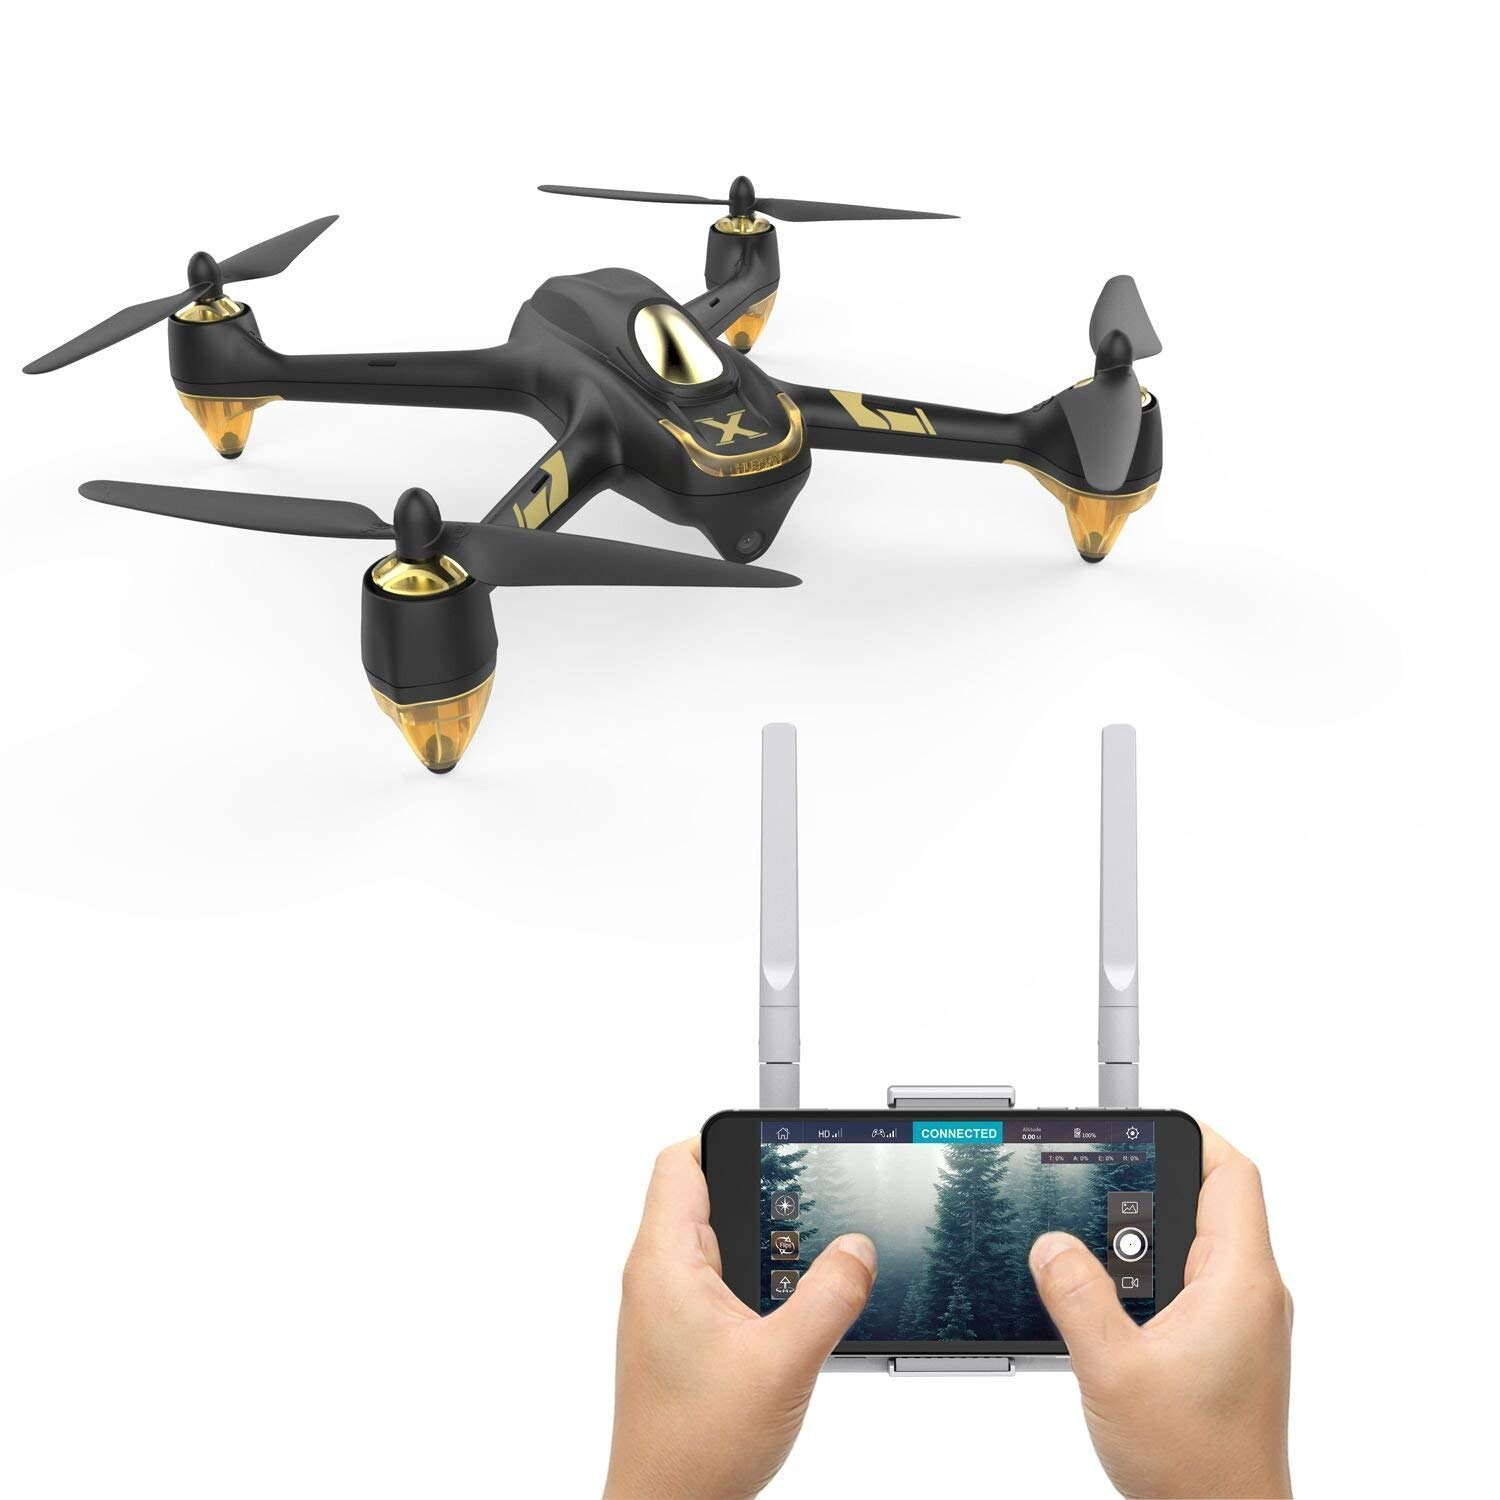 HUBSAN HubsanH501A X4 Air Pro BRUSHLEES WiFi Quadcopter Drone 1080P HD Camera GPS Live Video RTF